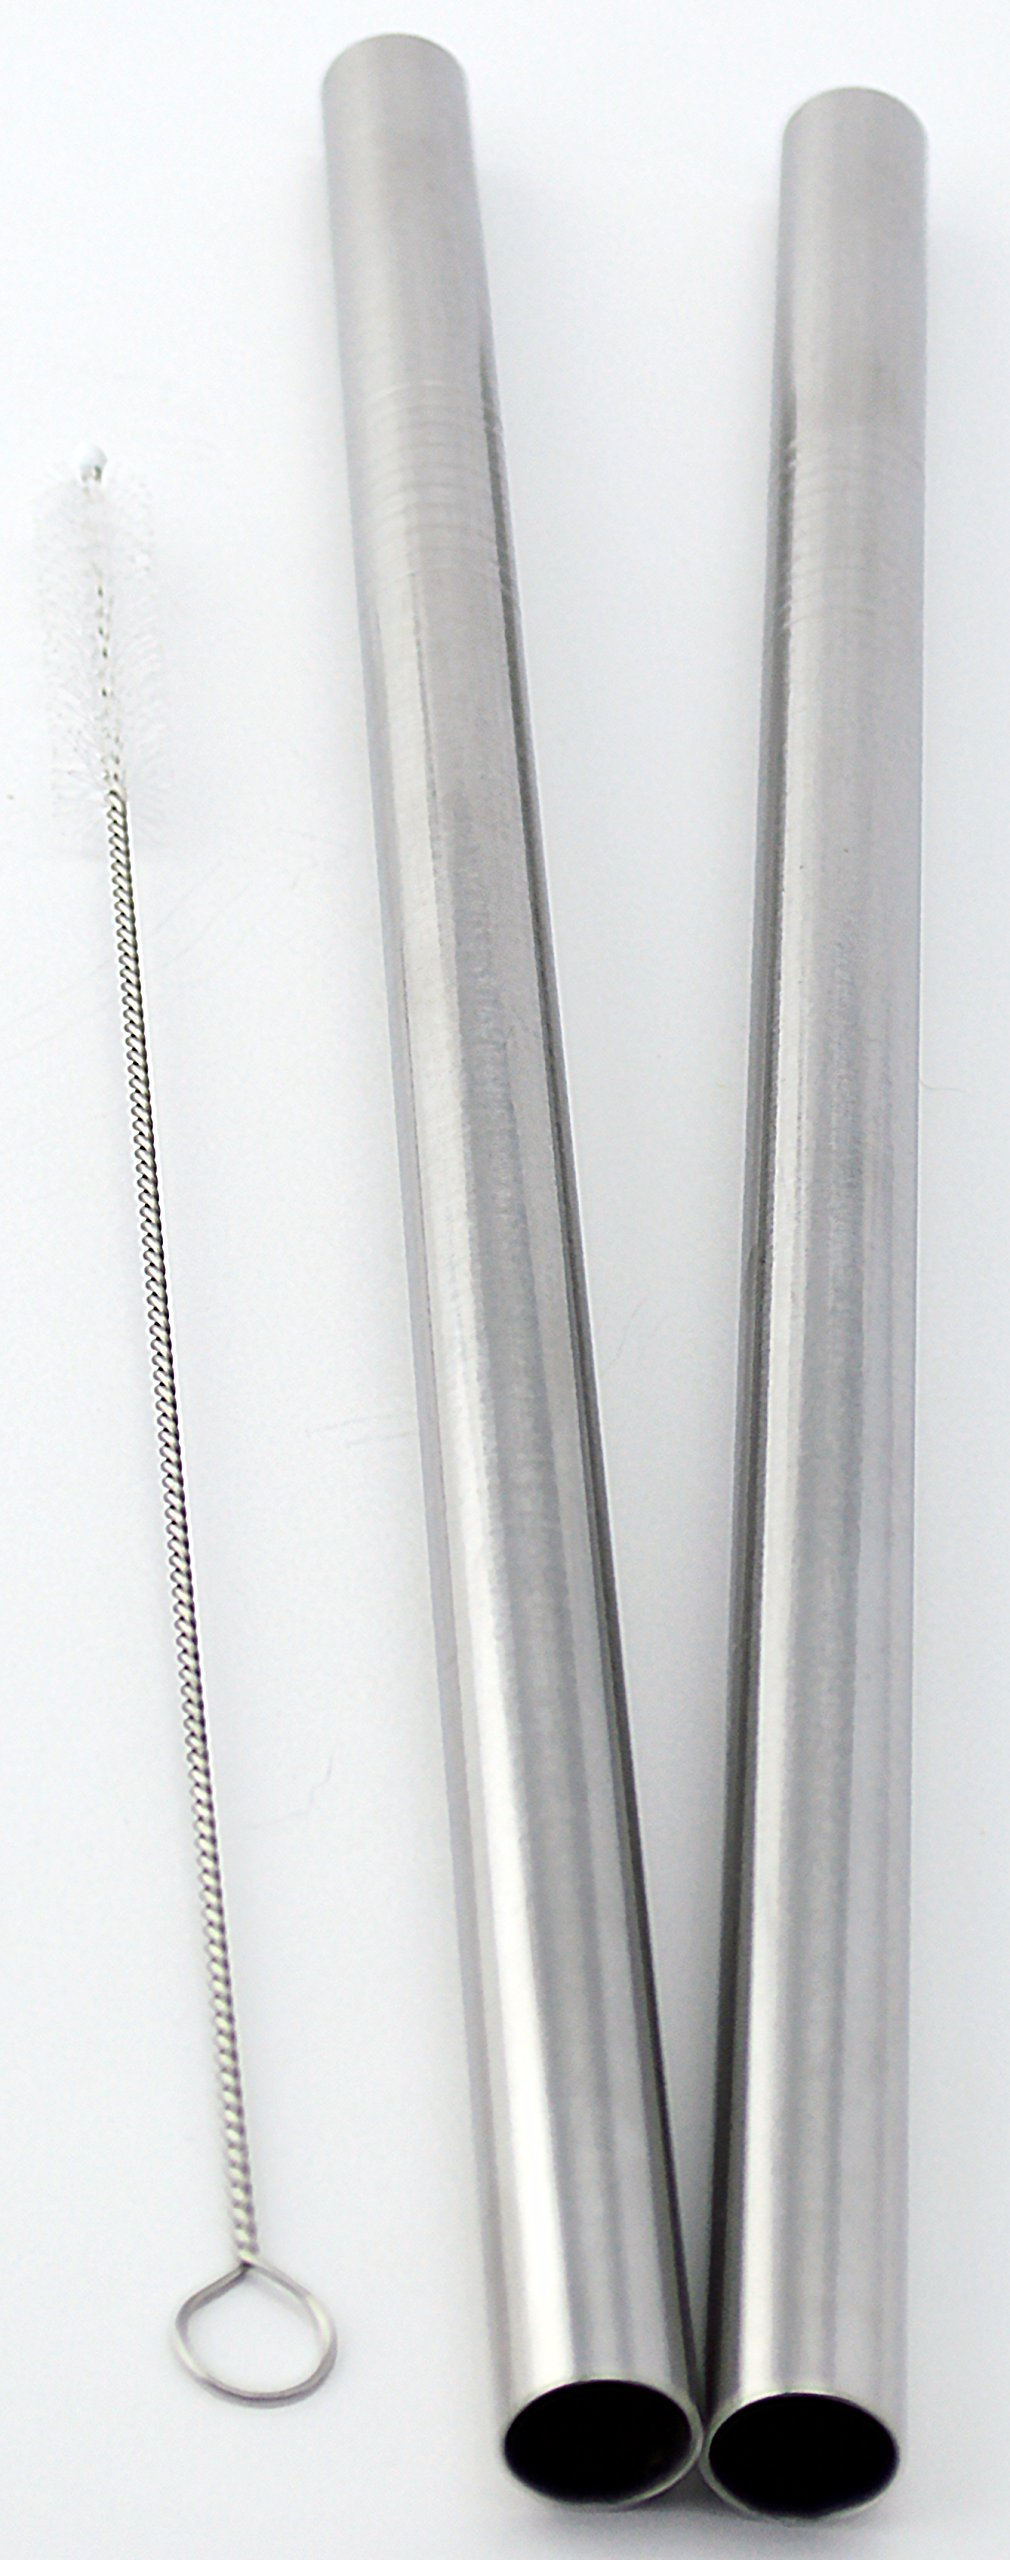 """2 BOBA Straw Stainless Steel Extra Wide 1/2"""" x 9.5"""" Long Tapioca Pearl Bubble Tea Thick FAT - CocoStraw Brand"""